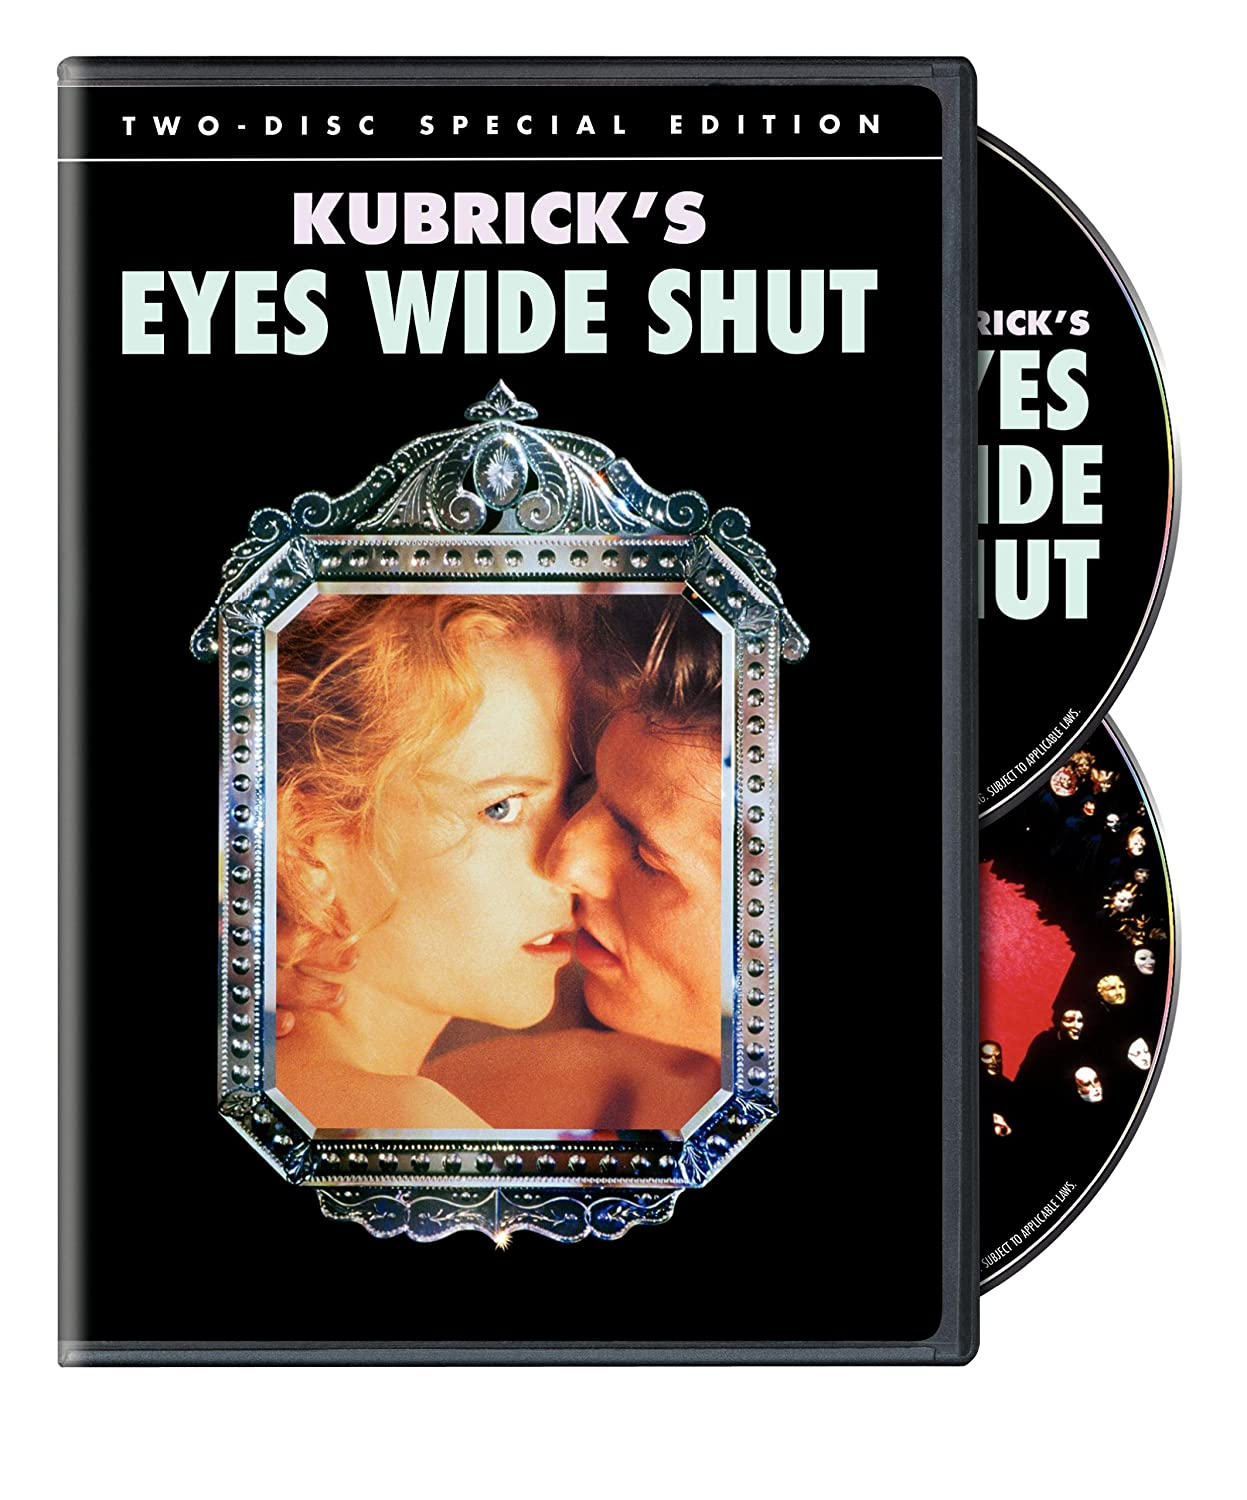 Amazon eyes wide shut two disc special edition tom cruise amazon eyes wide shut two disc special edition tom cruise nicole kidman stanley kubrick movies tv buycottarizona